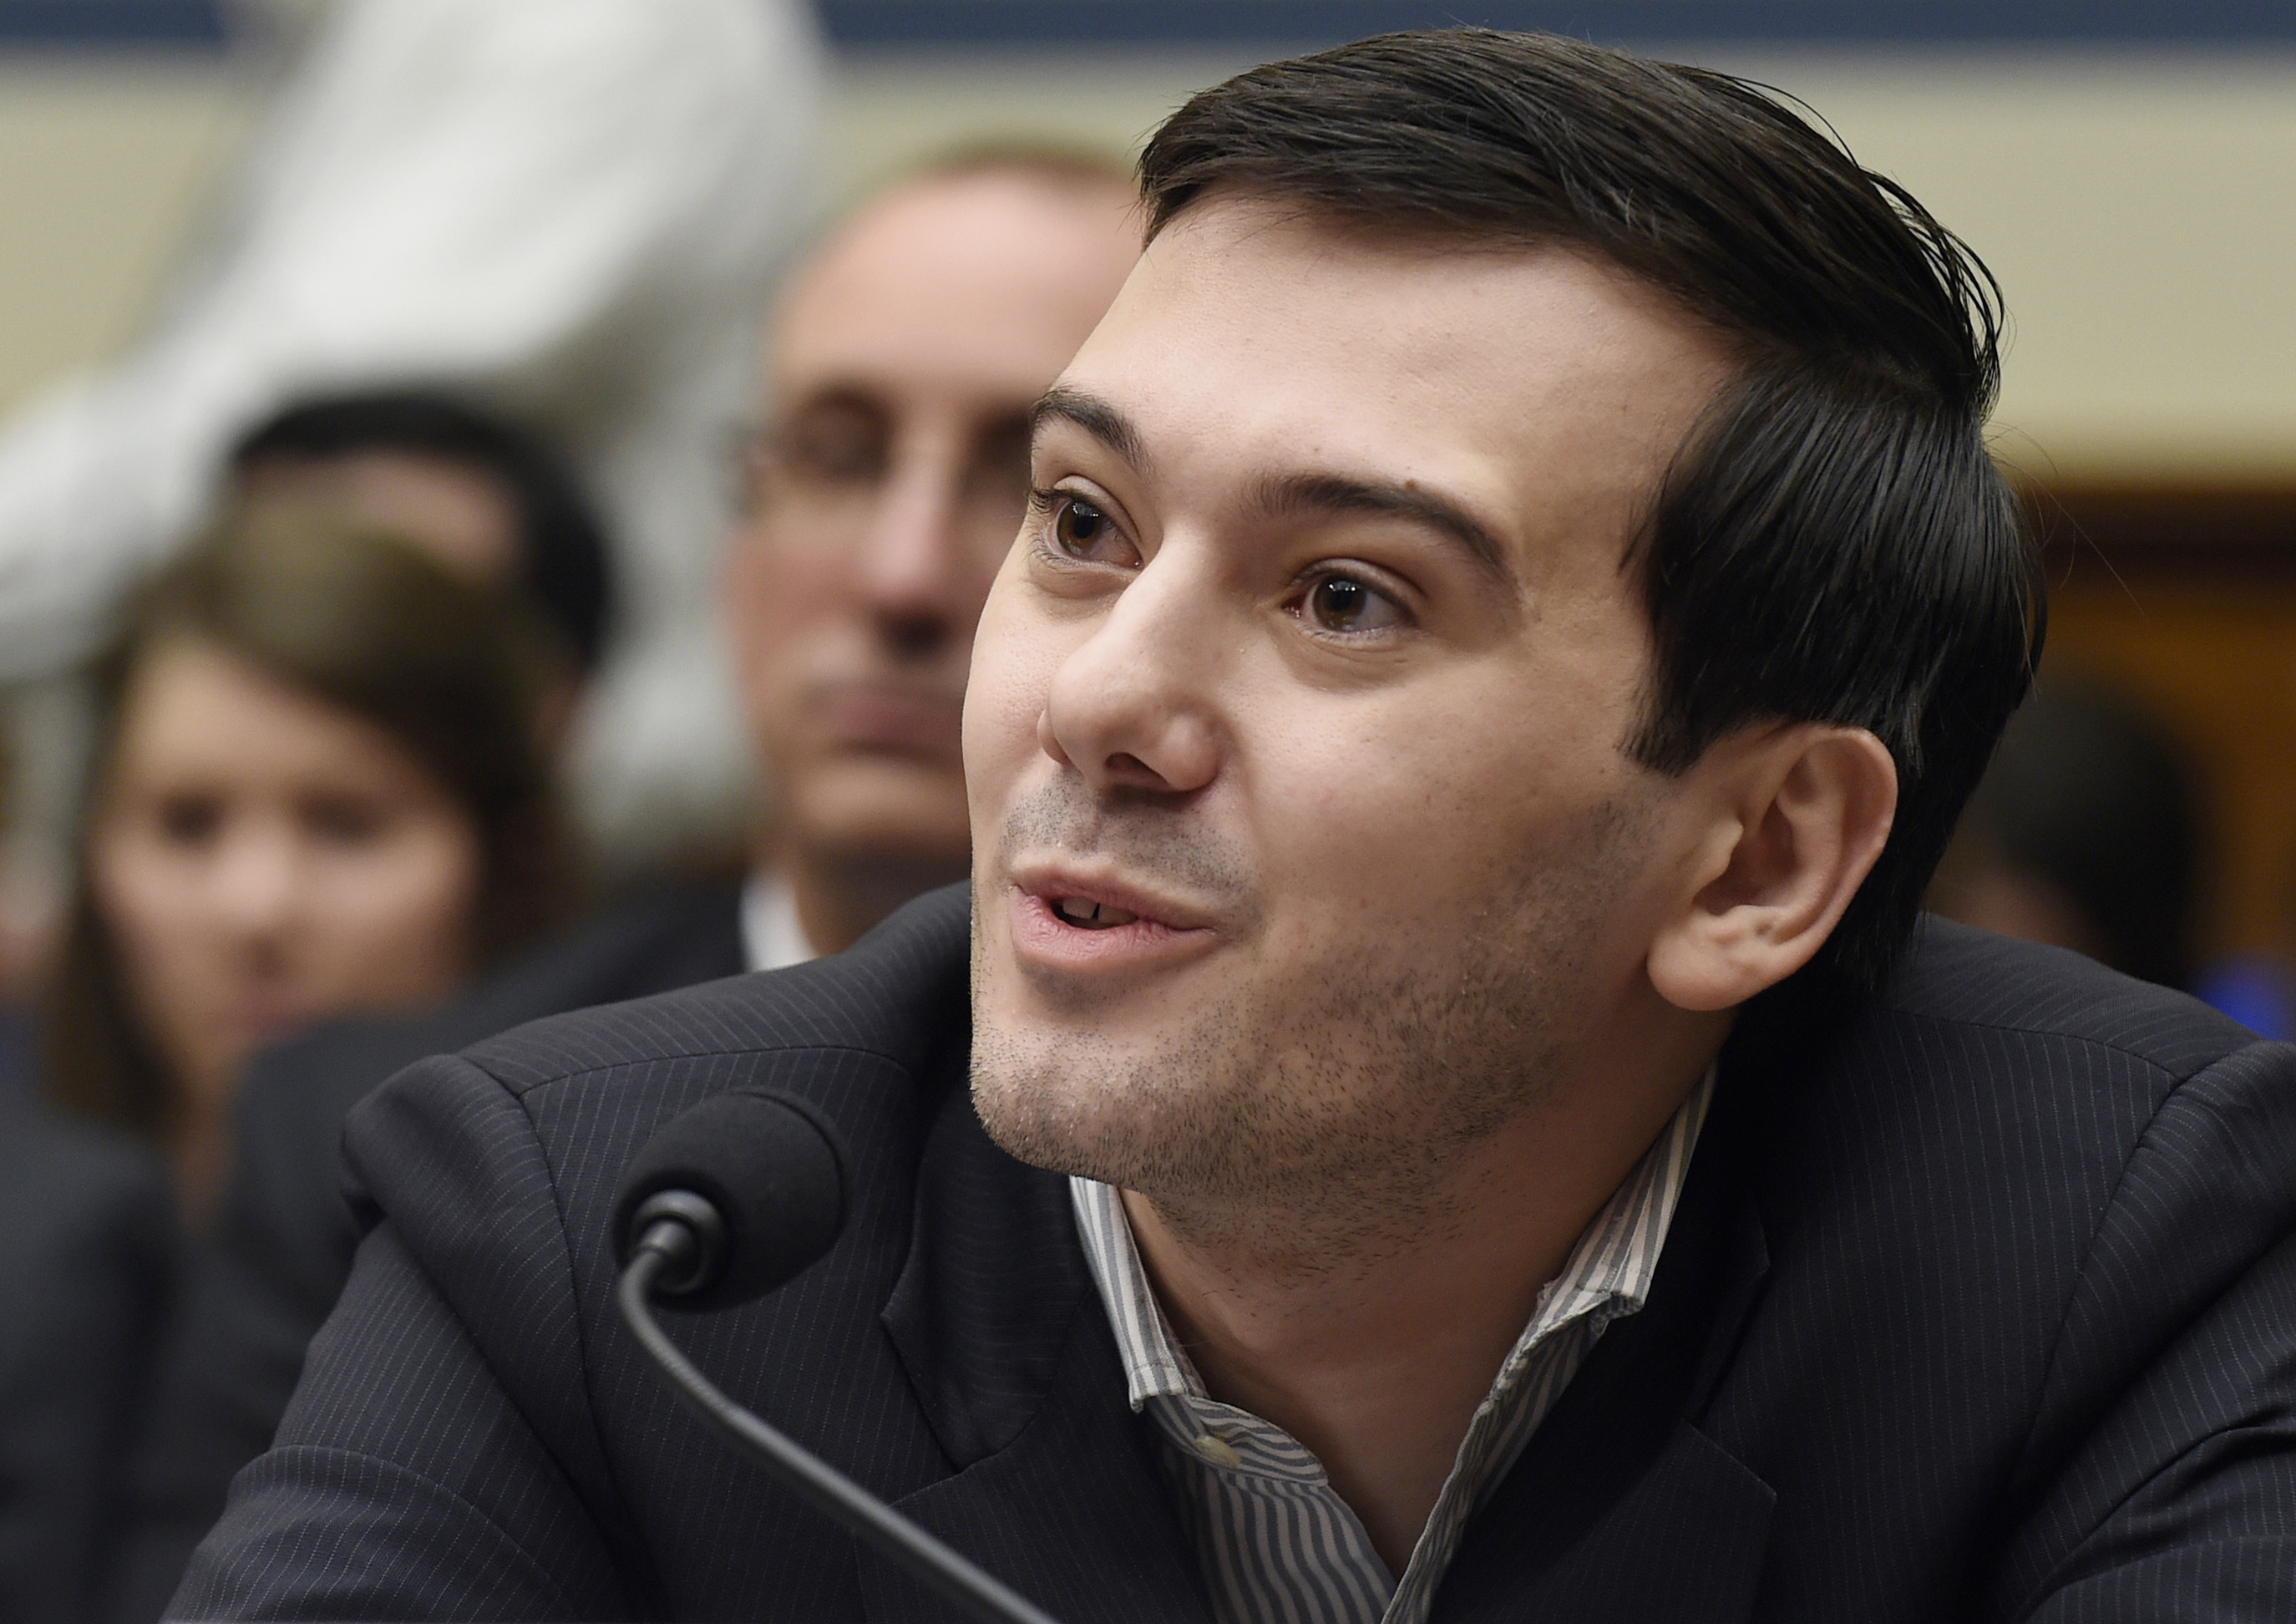 Want to punch Martin Shkreli in the face? There's a raffle for that